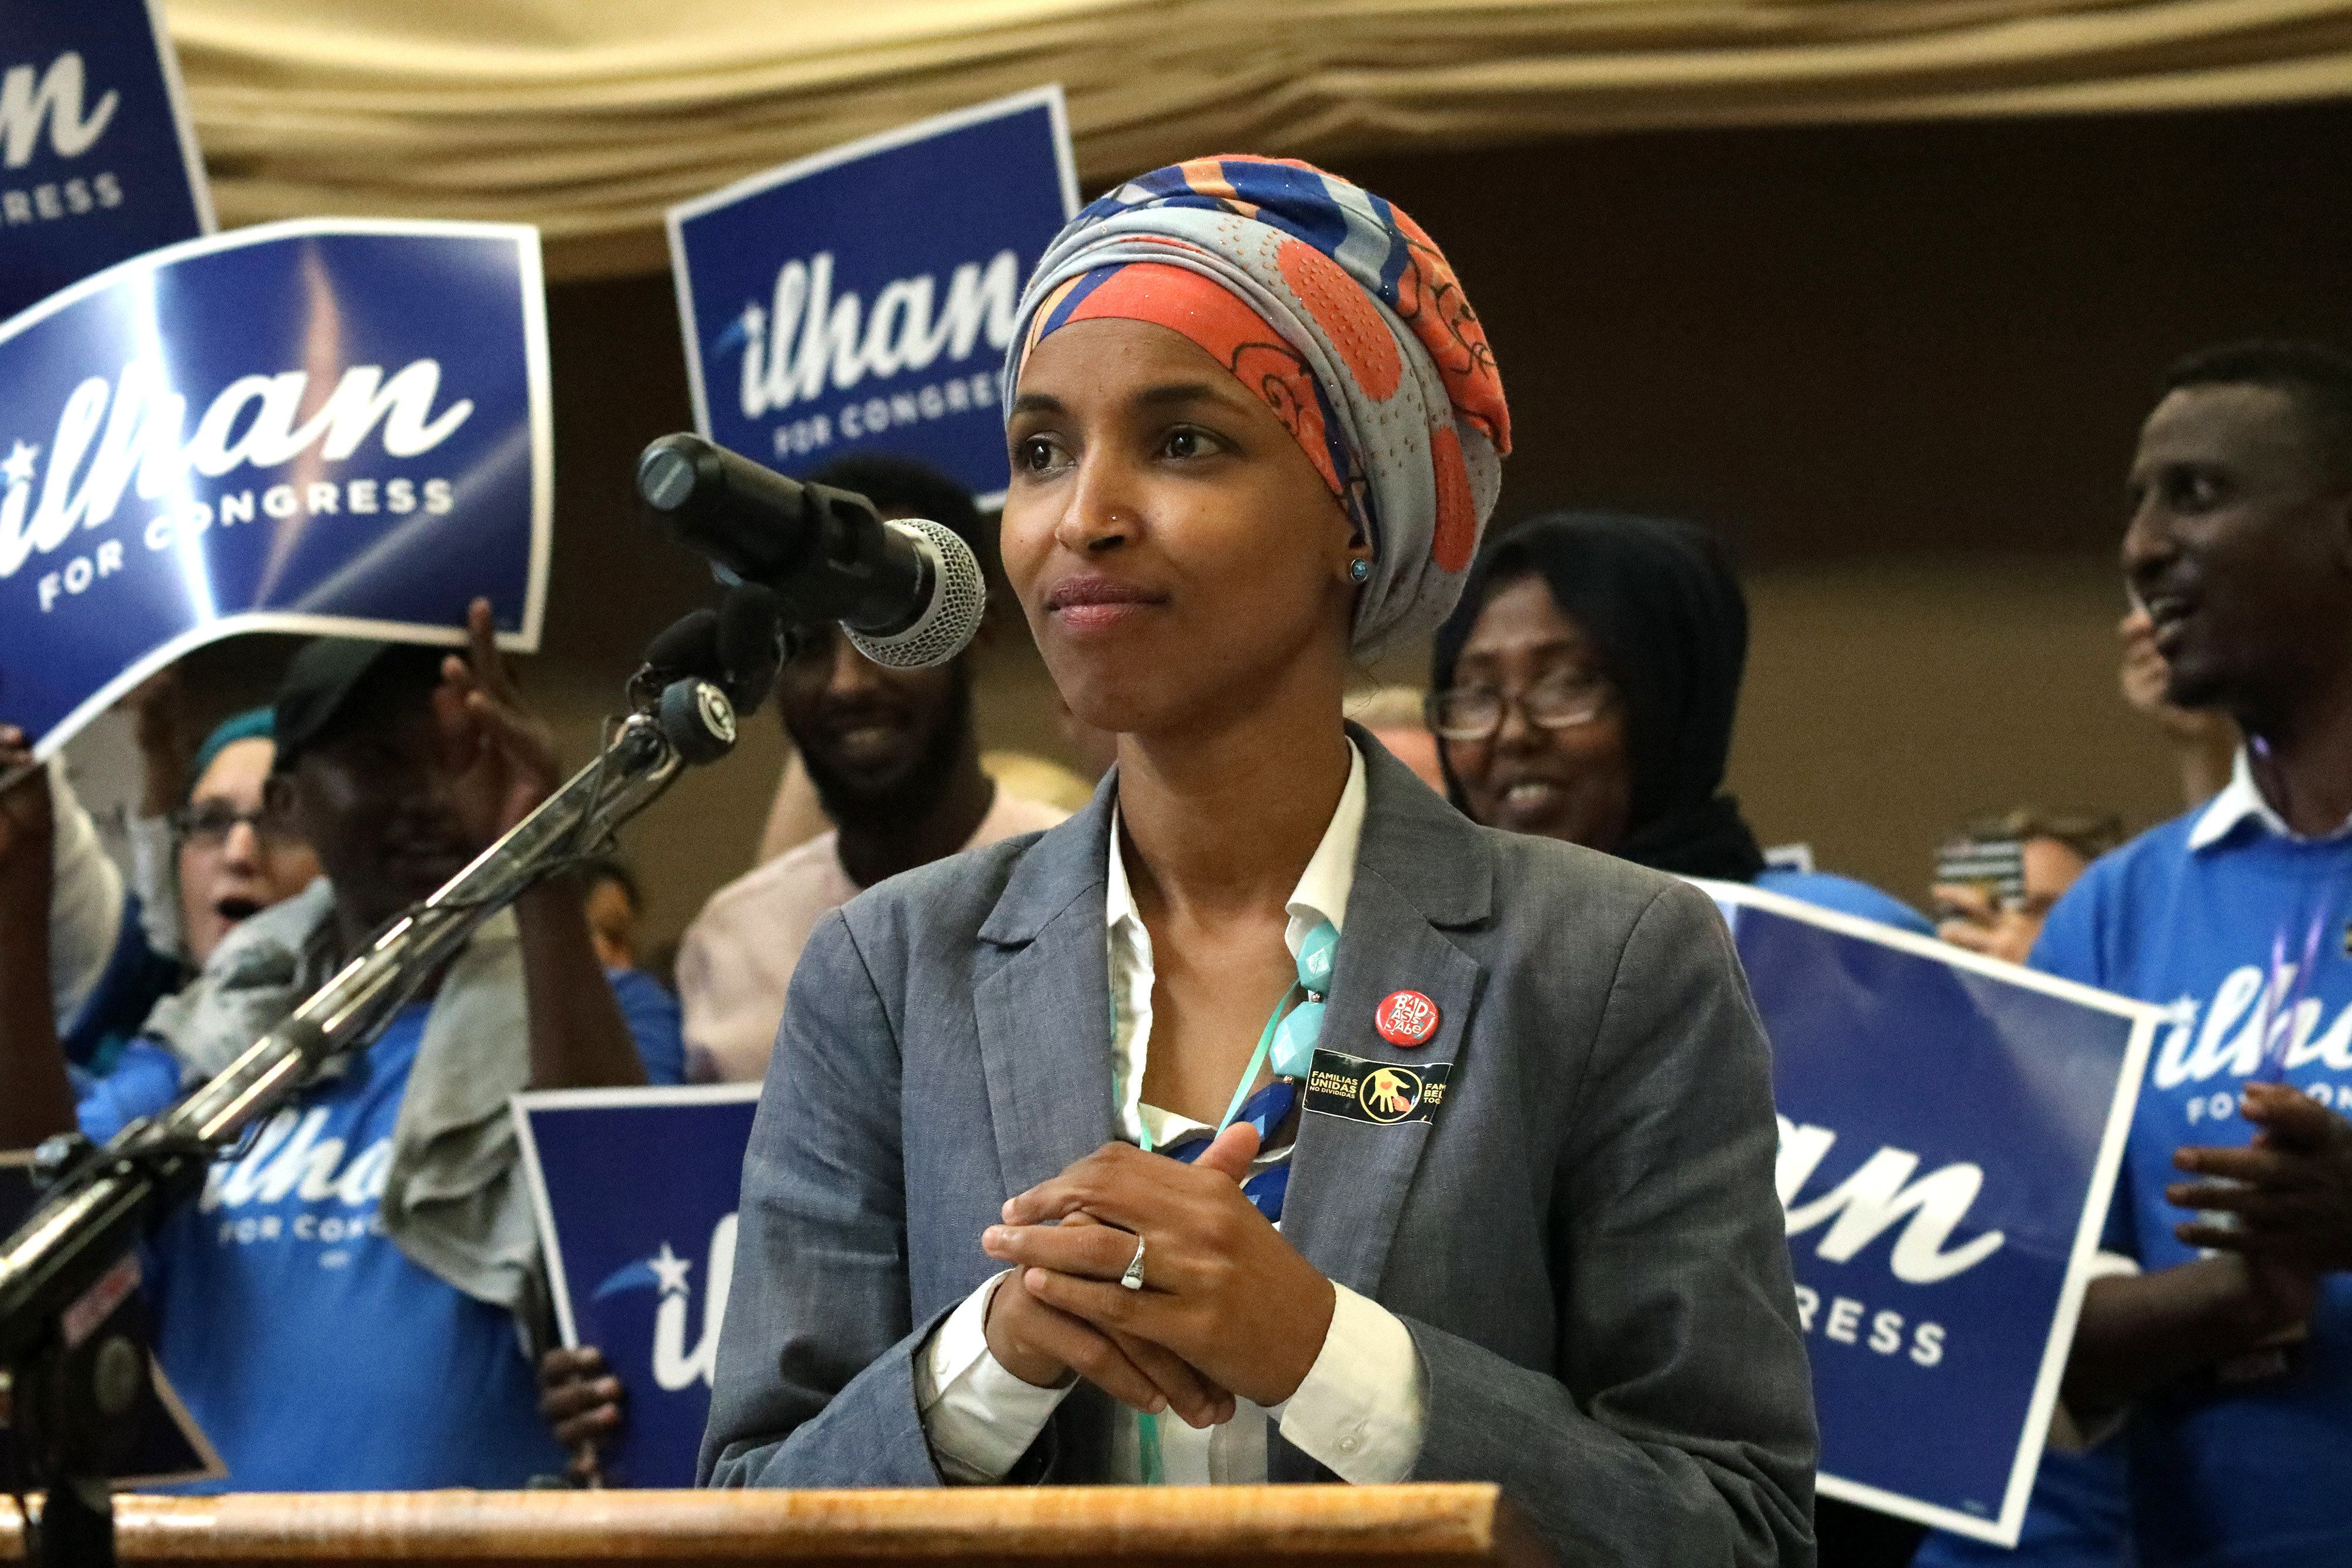 Minnesota's Ilhan Omar, pictured, and Michigan's Rashida Tlaib are poised to become the first Muslim women in Congress.